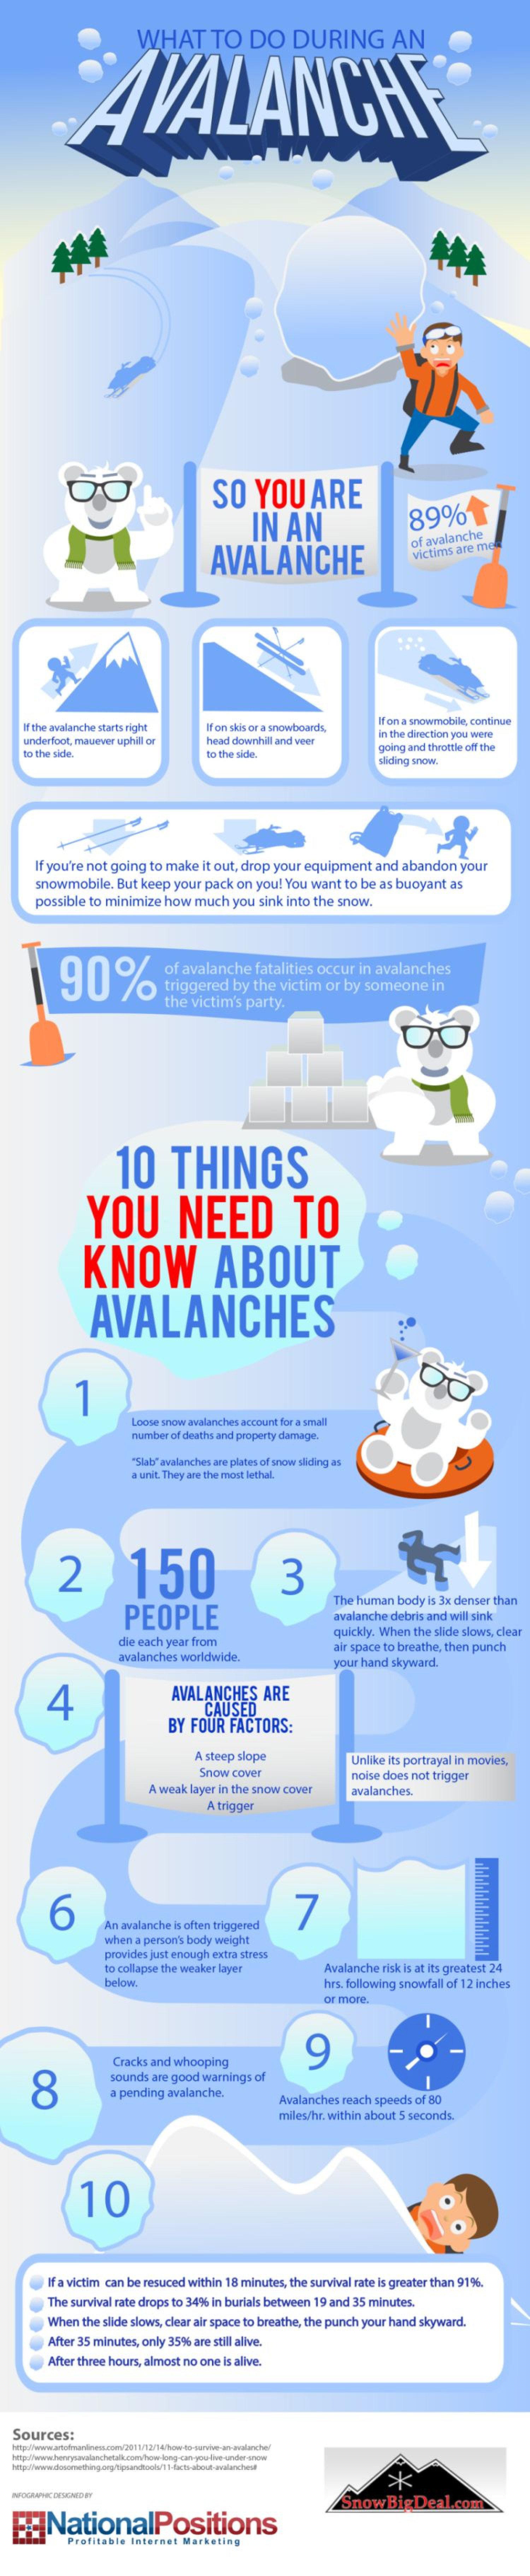 What to do During an Avalanche Infographic